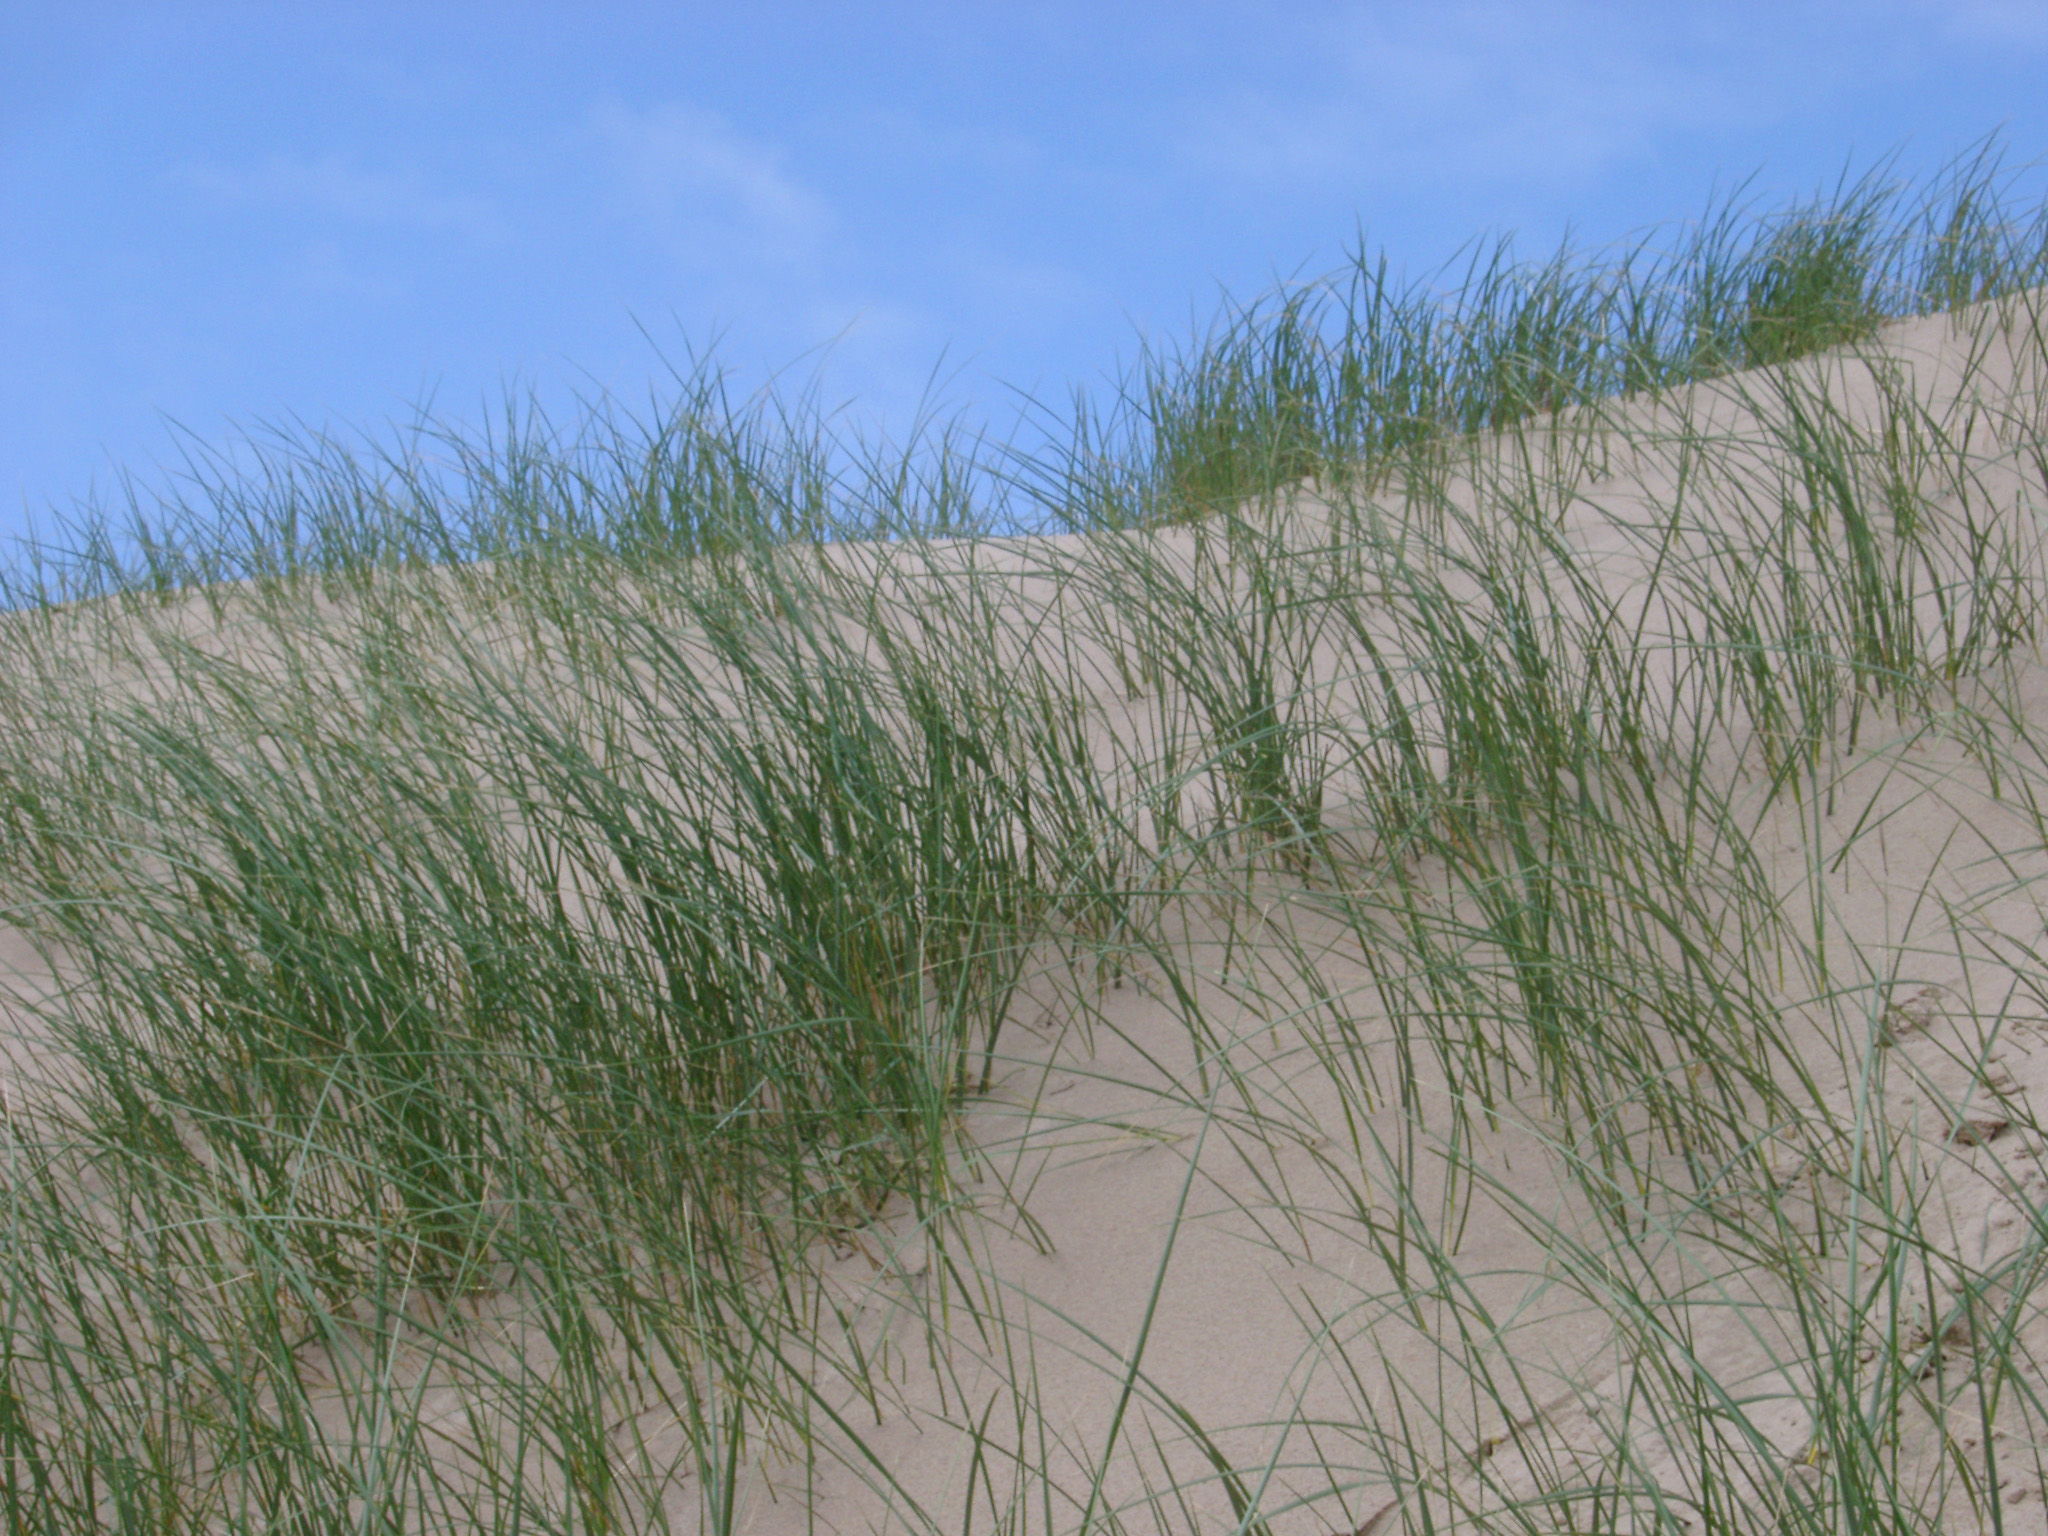 Coastal grasses growing on sand dunes helping to anchor them against the erosion of the wind and forming a unique habitat